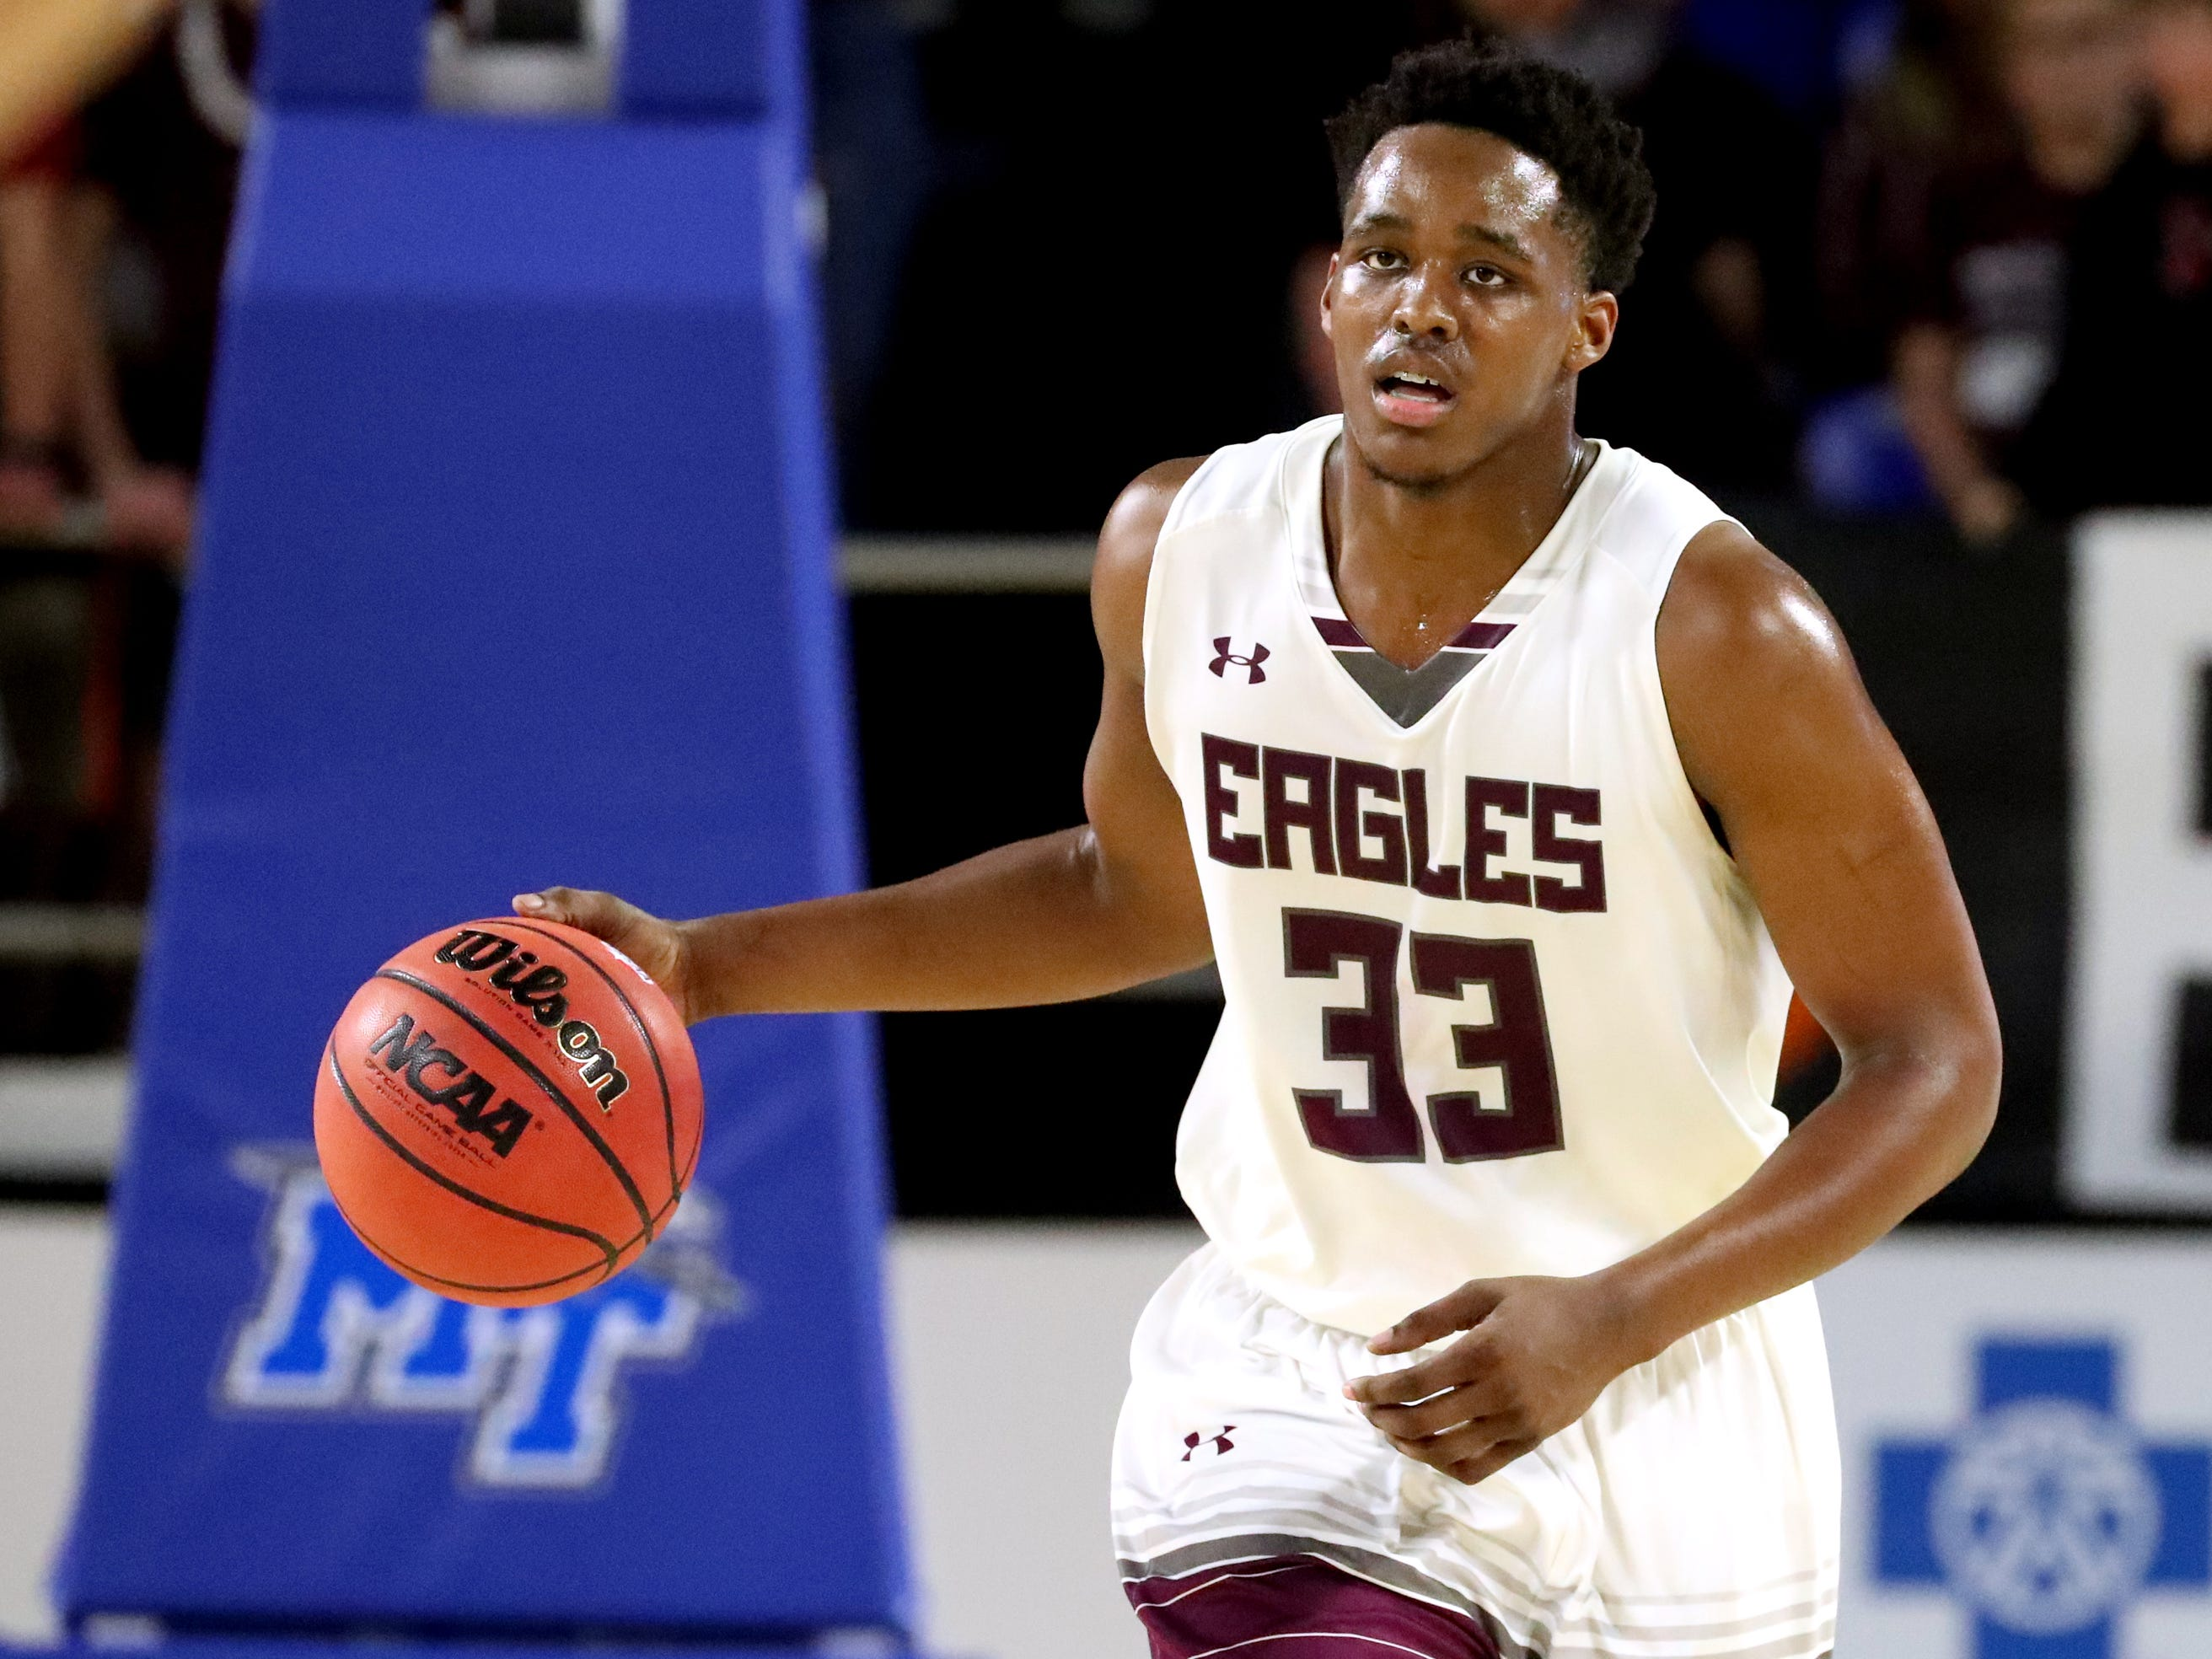 Eagleville's Demarious Stoudemire (33) brings the ball up court during the quarterfinal round of the TSSAA Class A Boys State Tournament against Cosby, on Thursday, March 14, 2019, at Murphy Center in Murfreesboro, Tenn.